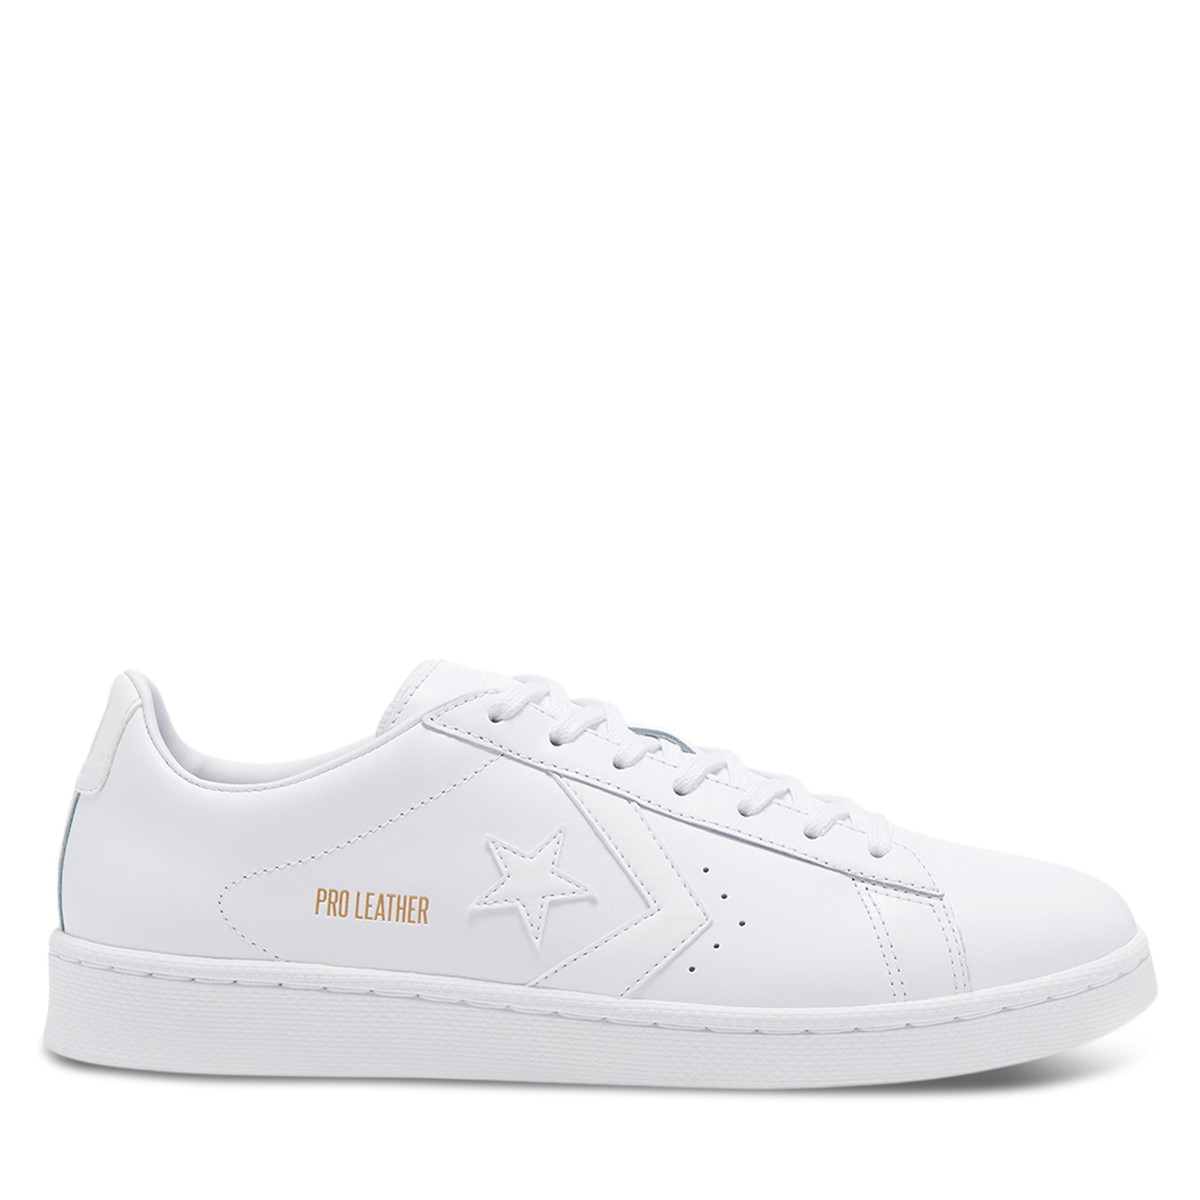 Men's Pro Leather Sneakers in White